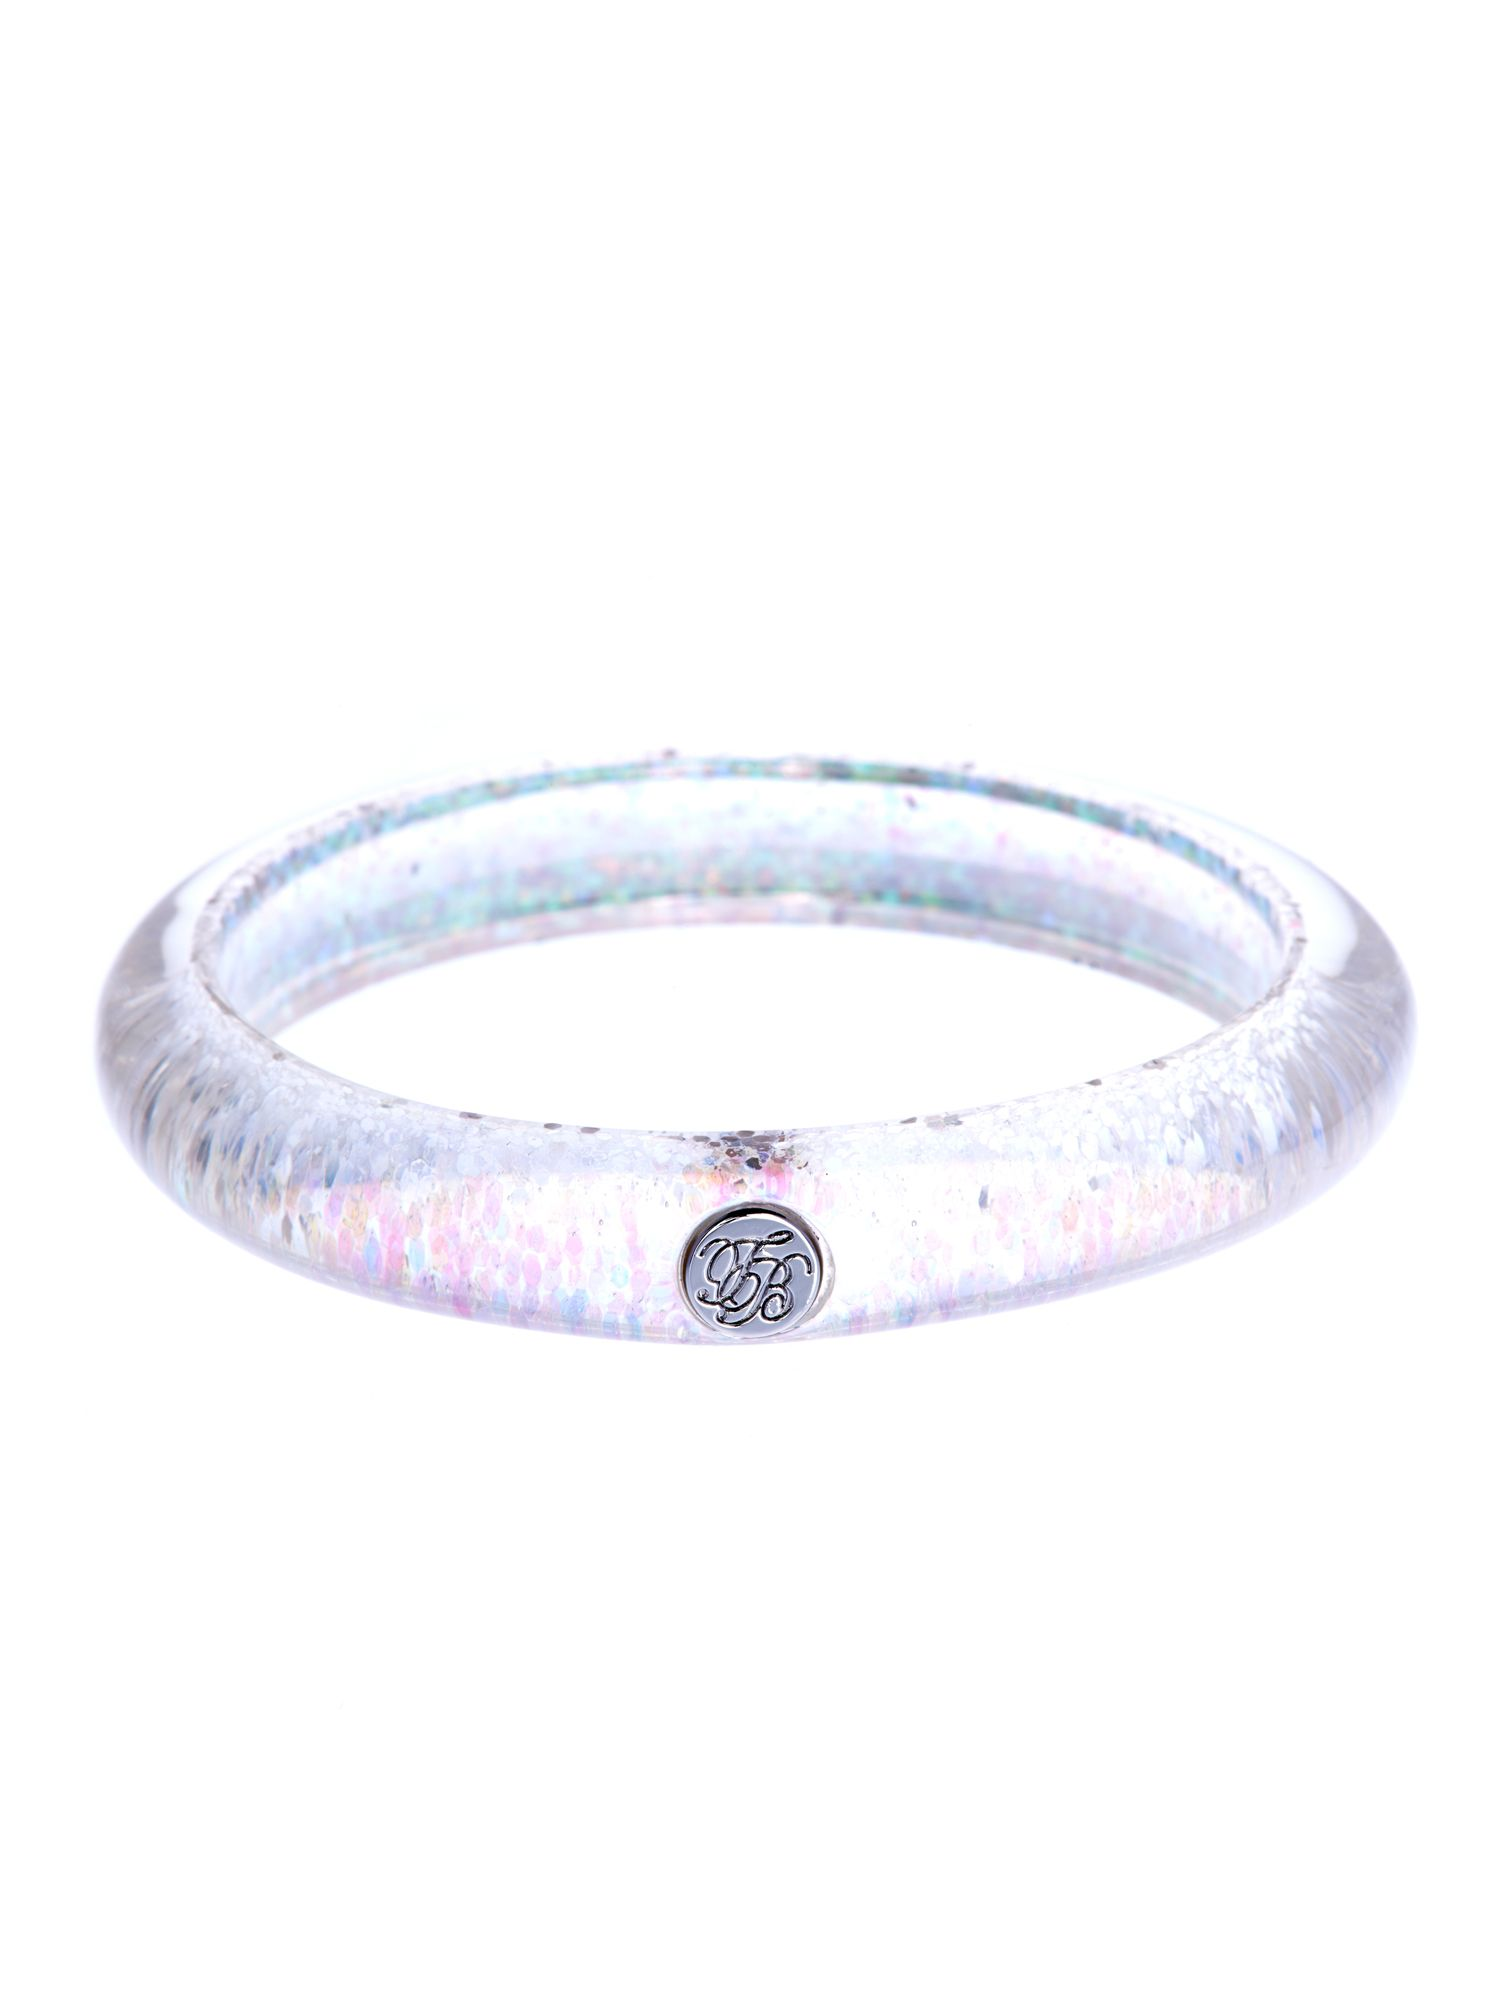 Ryleey resin button bangle